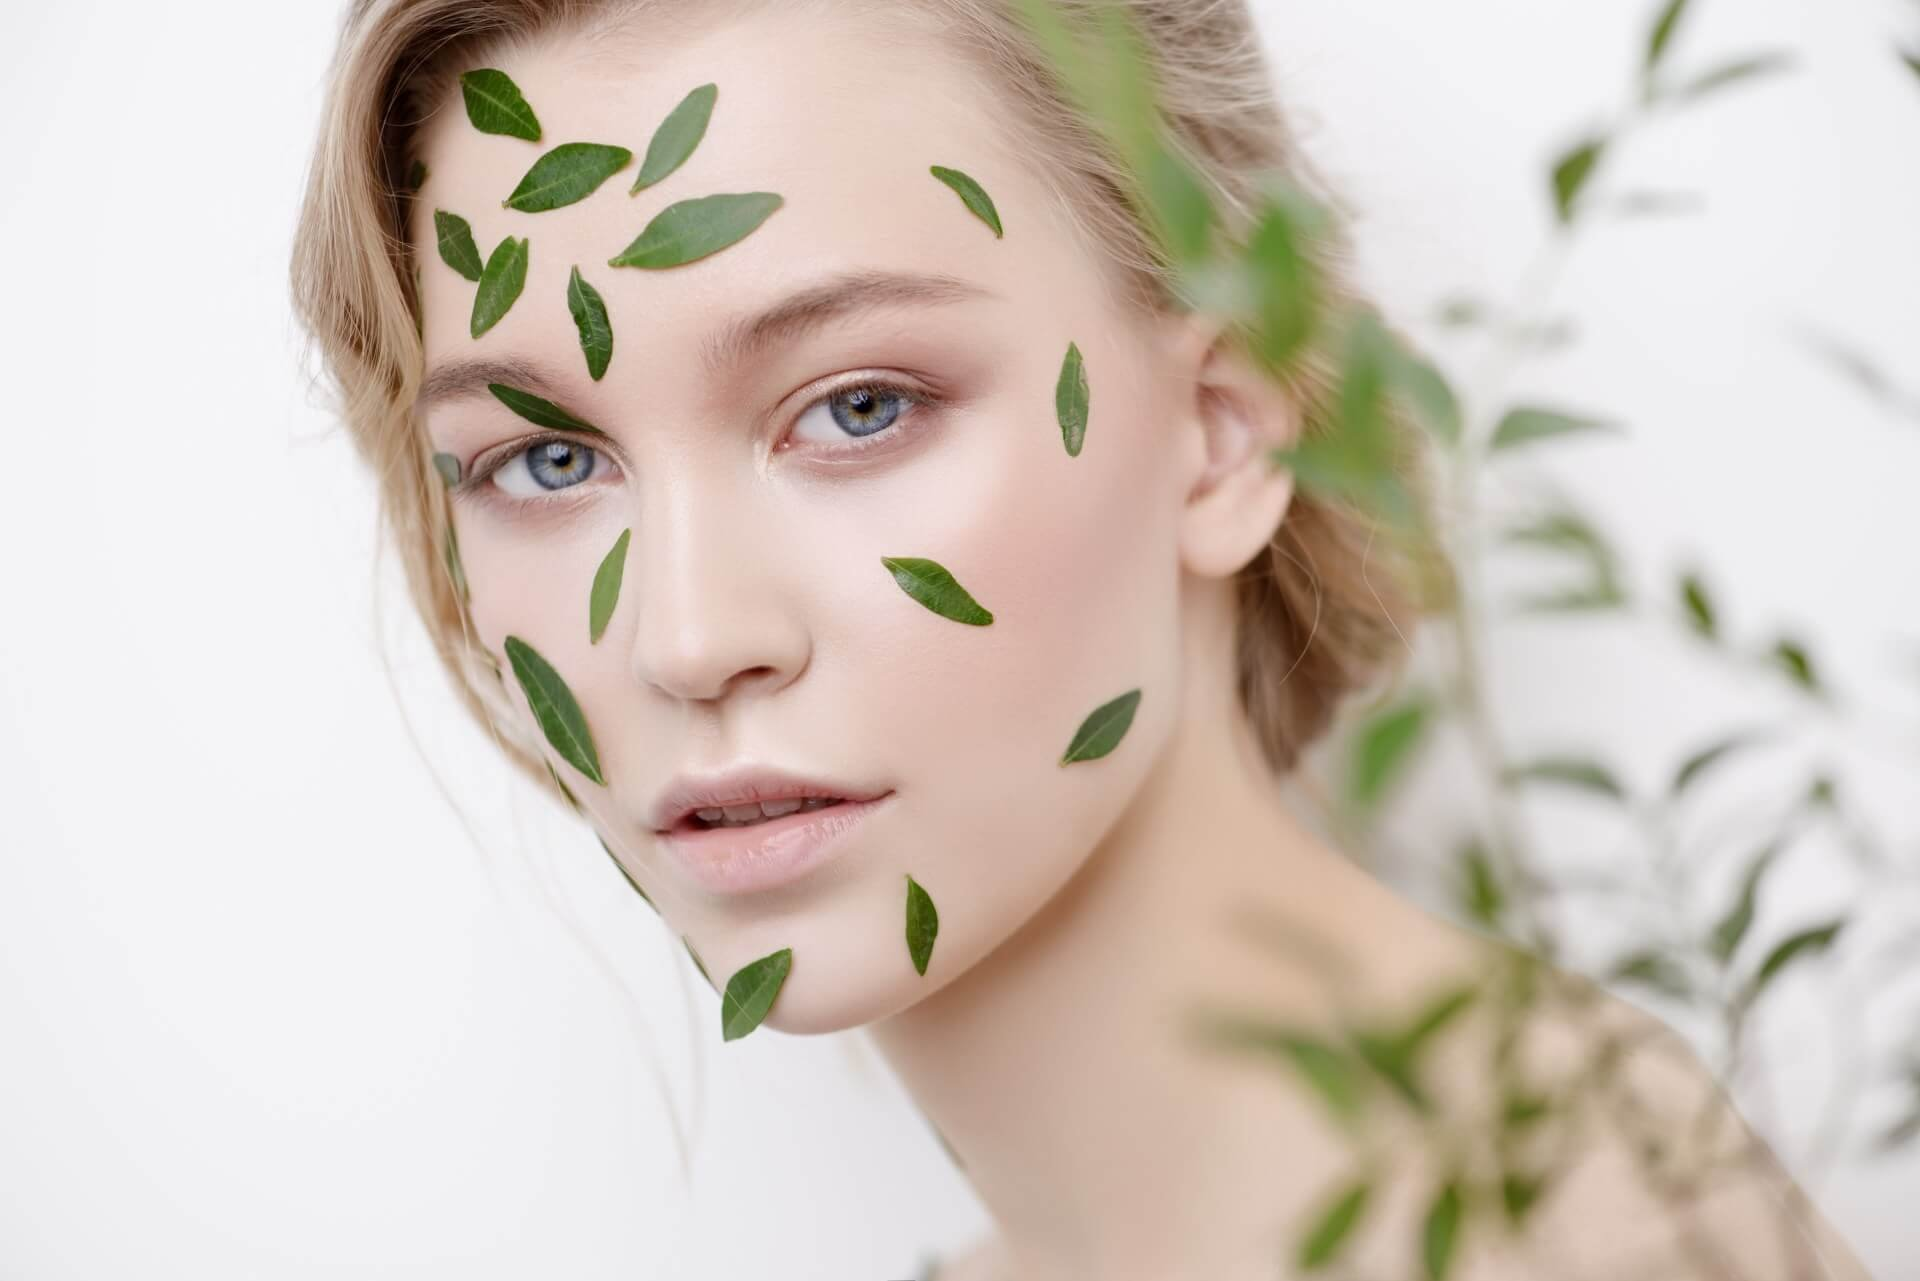 GREEN BEAUTY AND SCIENCE